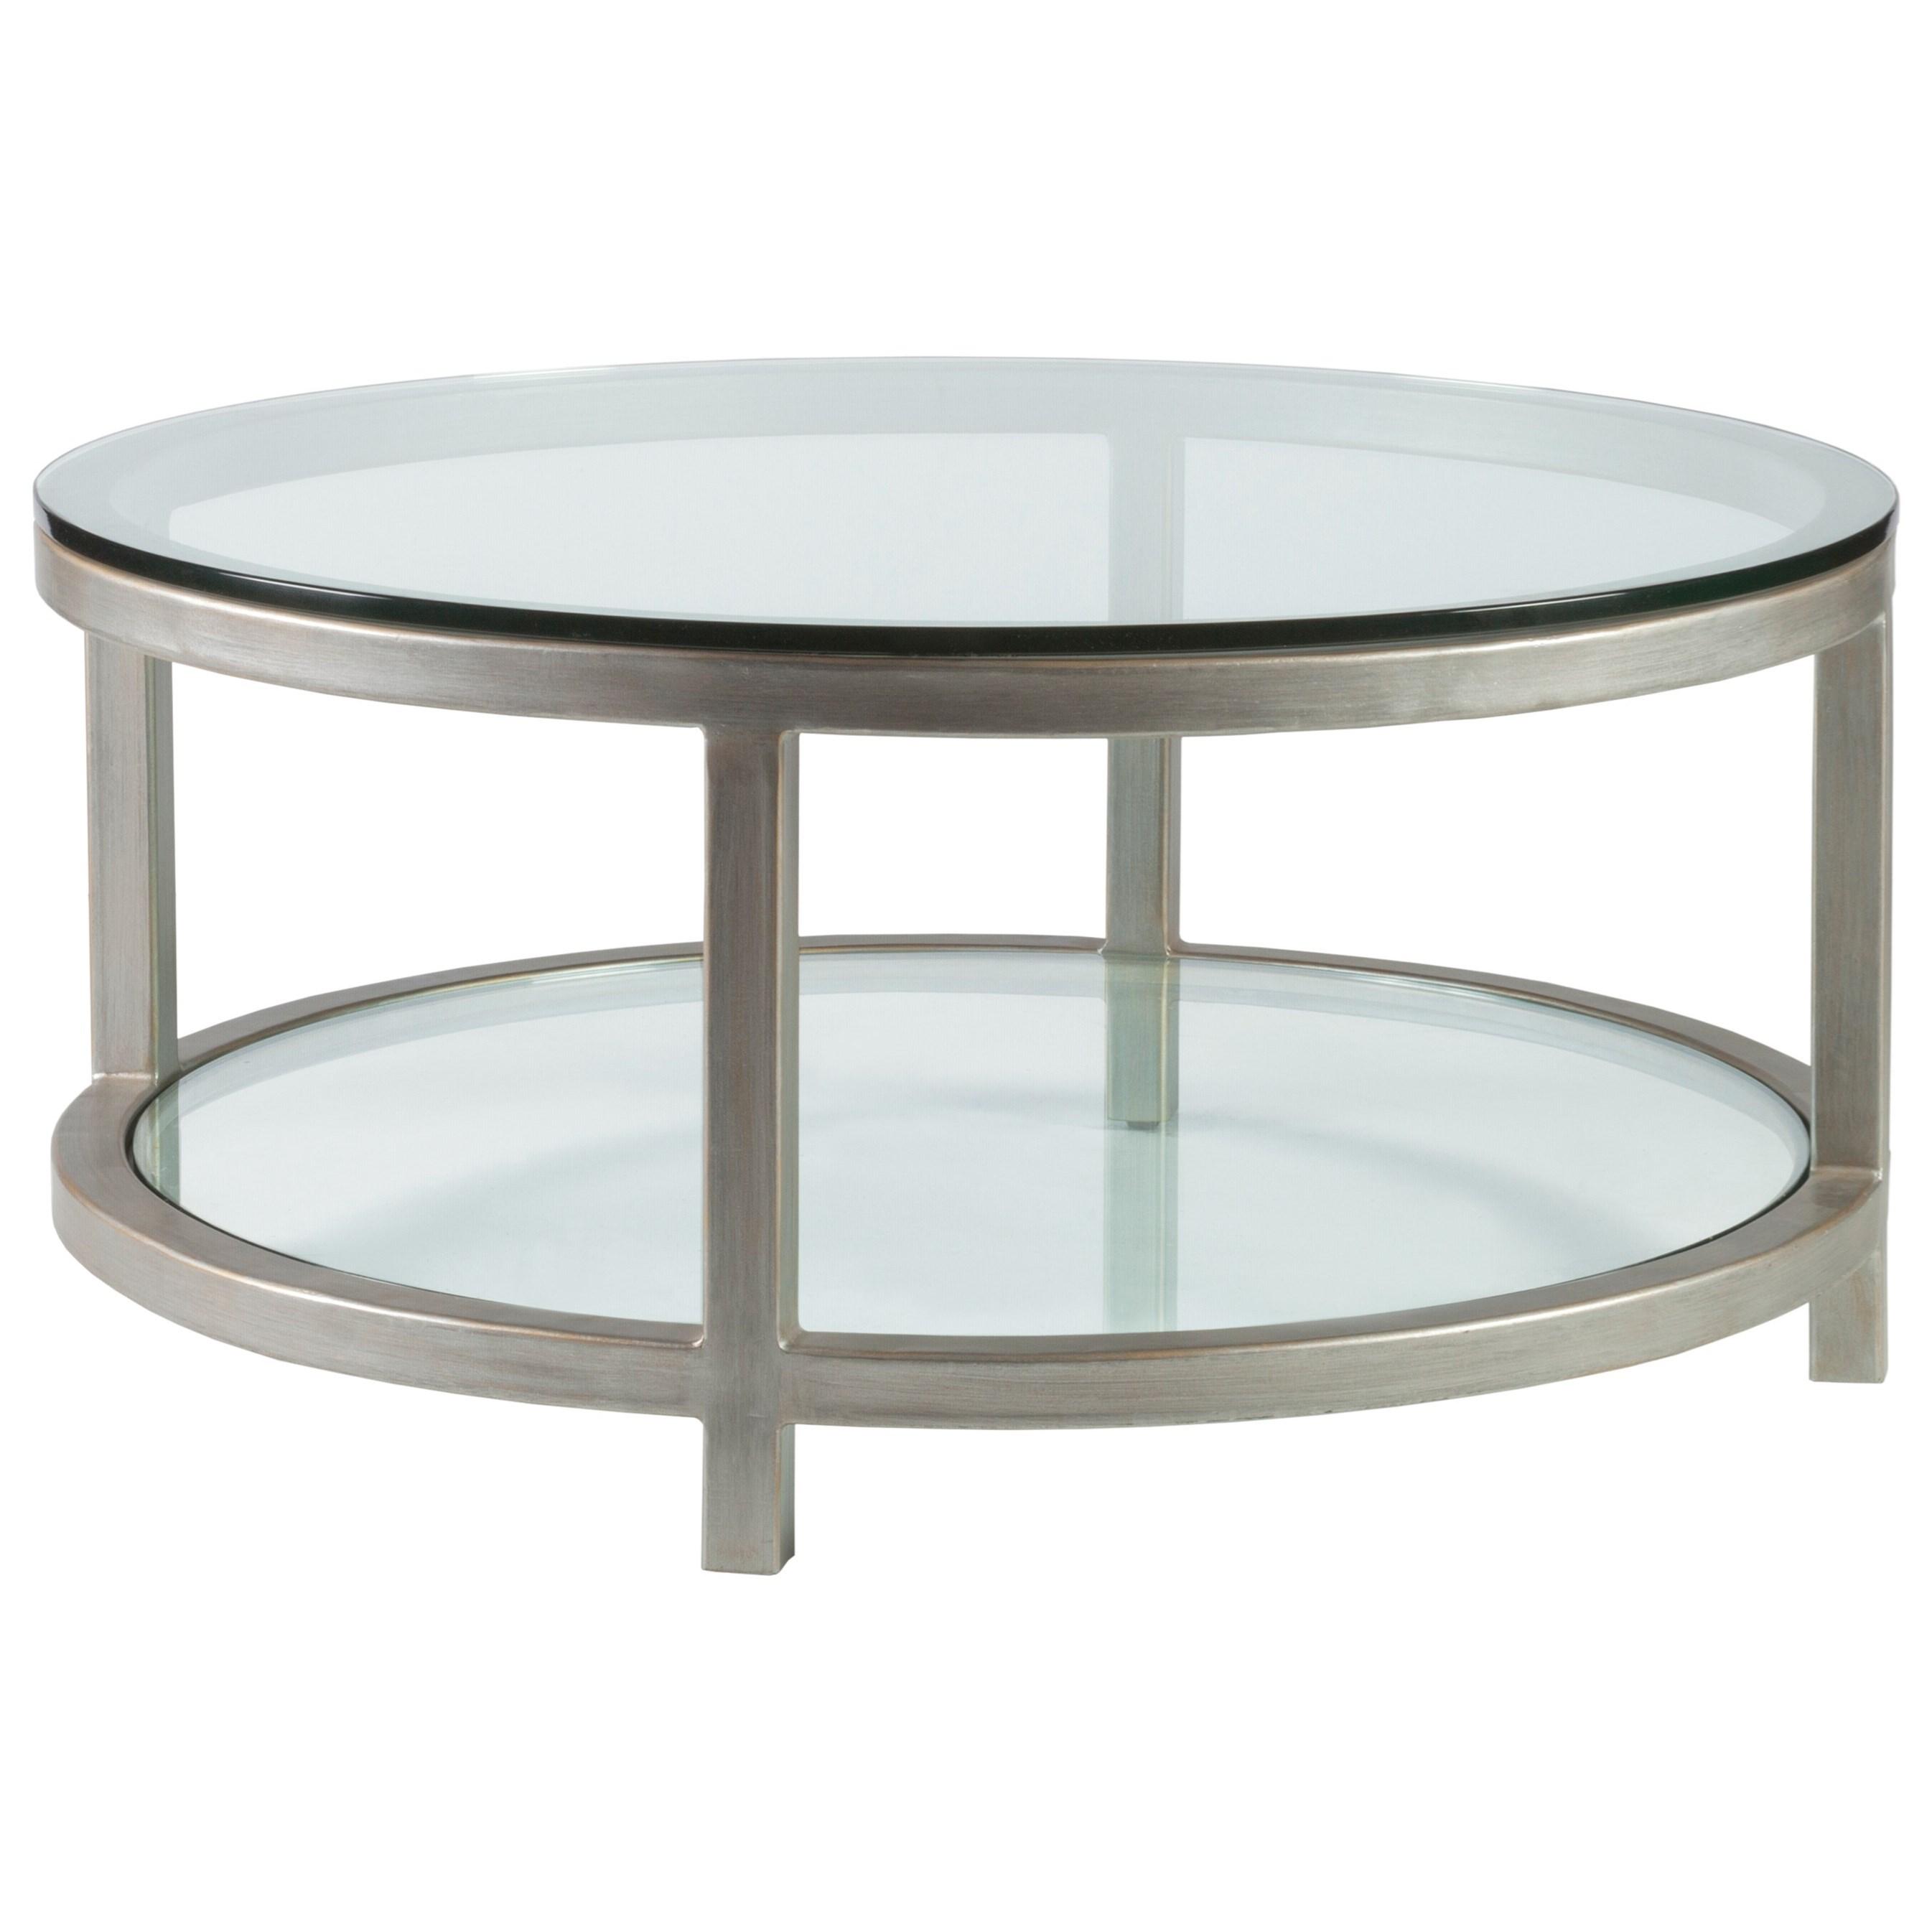 Metal Designs Per Se Round Cocktail Table by Artistica at Baer's Furniture